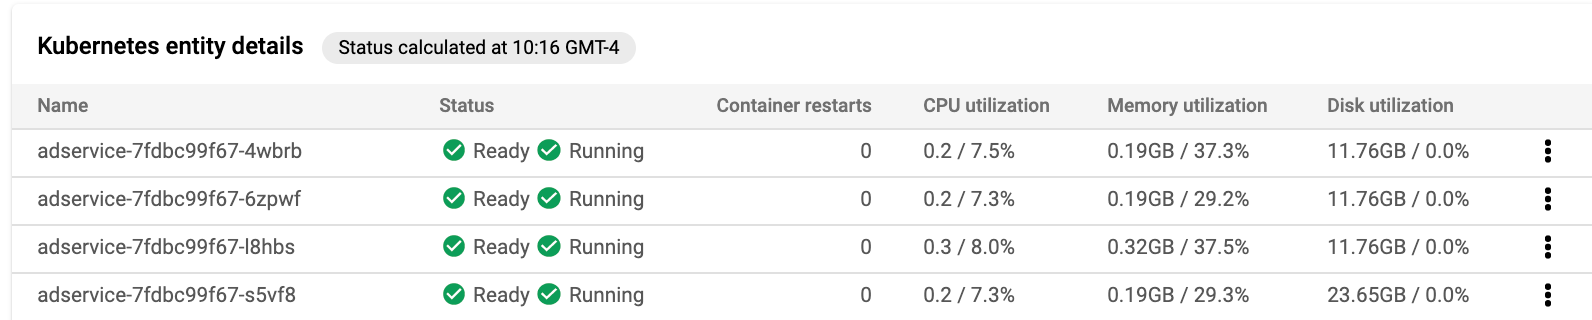 **Kubernetes entity details** shows information about the entities in the service.